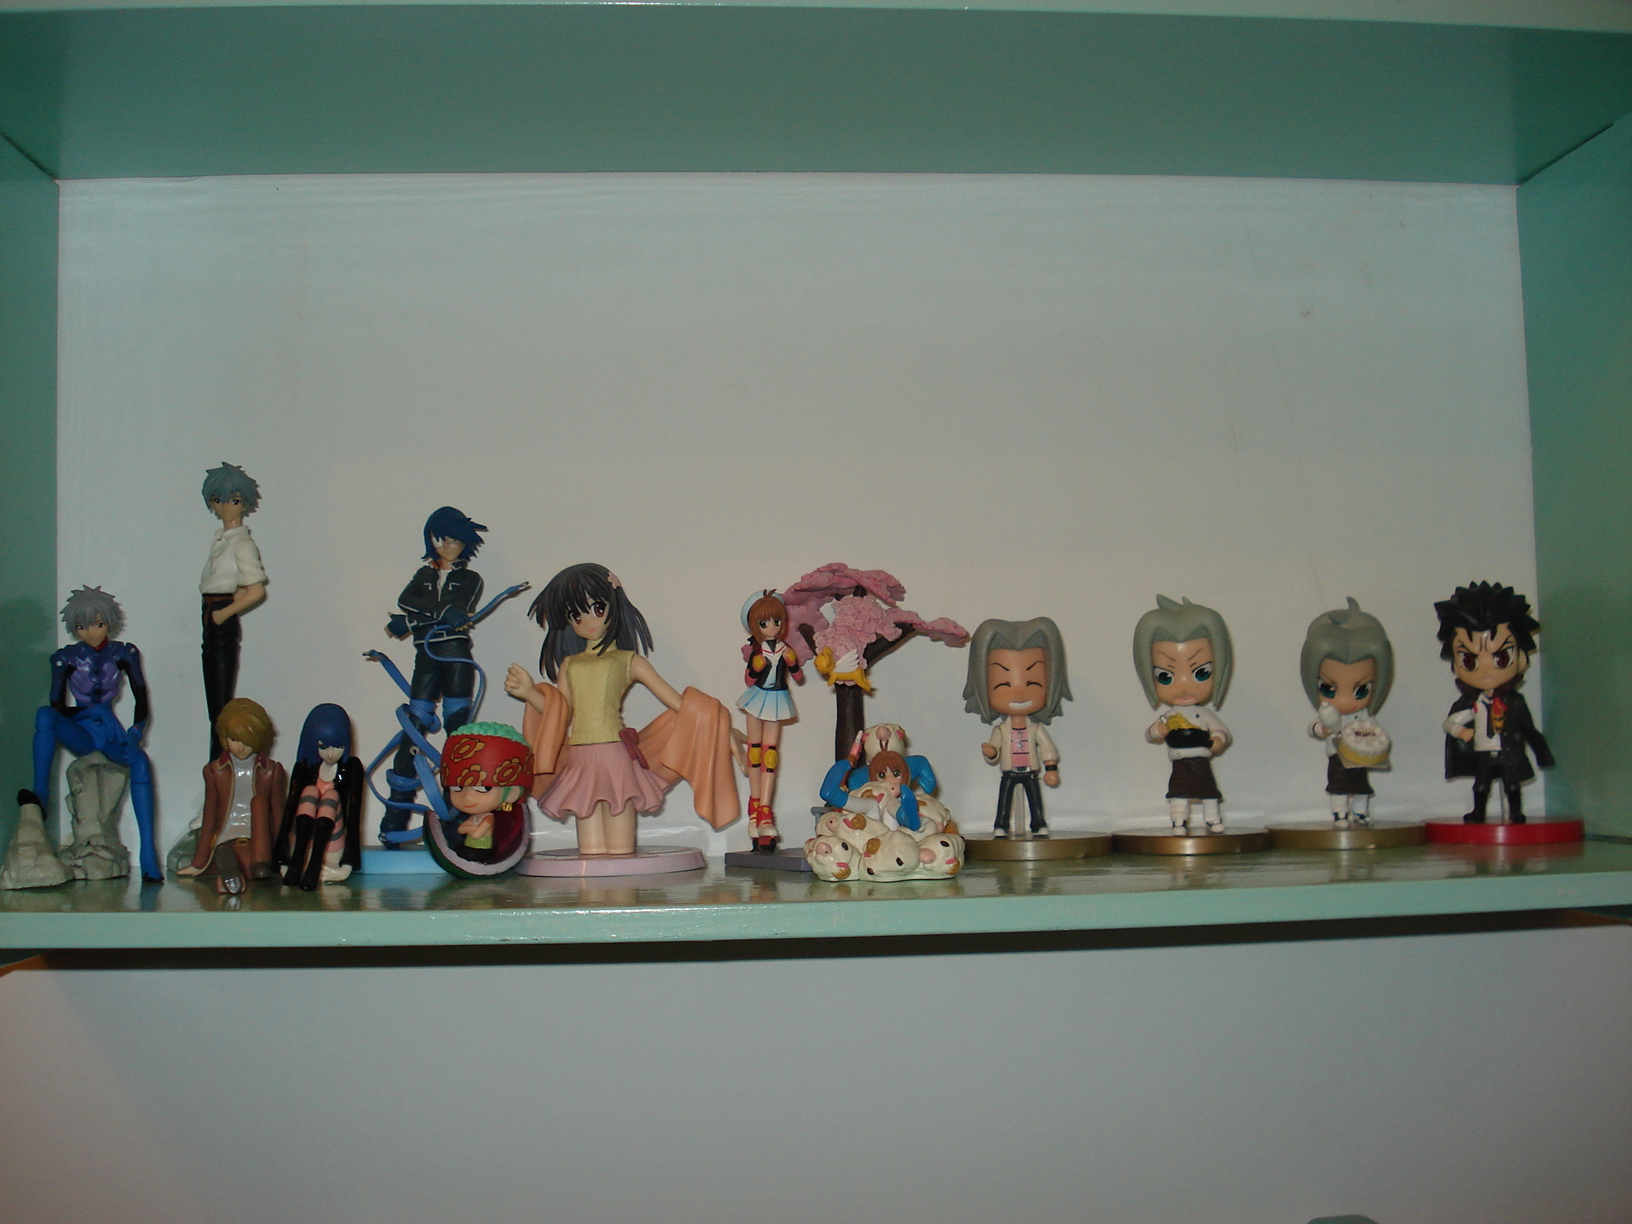 gainax megahouse hgif bandai katekyou_hitman_reborn! roronoa_zoro card_captor_sakura yujin nana shin_seiki_evangelion air_gear nagisa_kaworu khara kinomoto_sakura takara_tomy_a.r.t.s sadamoto_yoshiyuki one_piece_film:_strong_world petit_chara_land gokudera_hayato xanxus amada uchuu_kaizoku_captain_harlock wanijima_agito daiba_tadashi hgif_evangelion_file_01_-_sadamoto_yoshiyuki_collection one_piece:_strong_world_petit_chara_land_-__fruit★party hgif_evangelion_file_02_-_sadamoto_yoshiyuki_collection